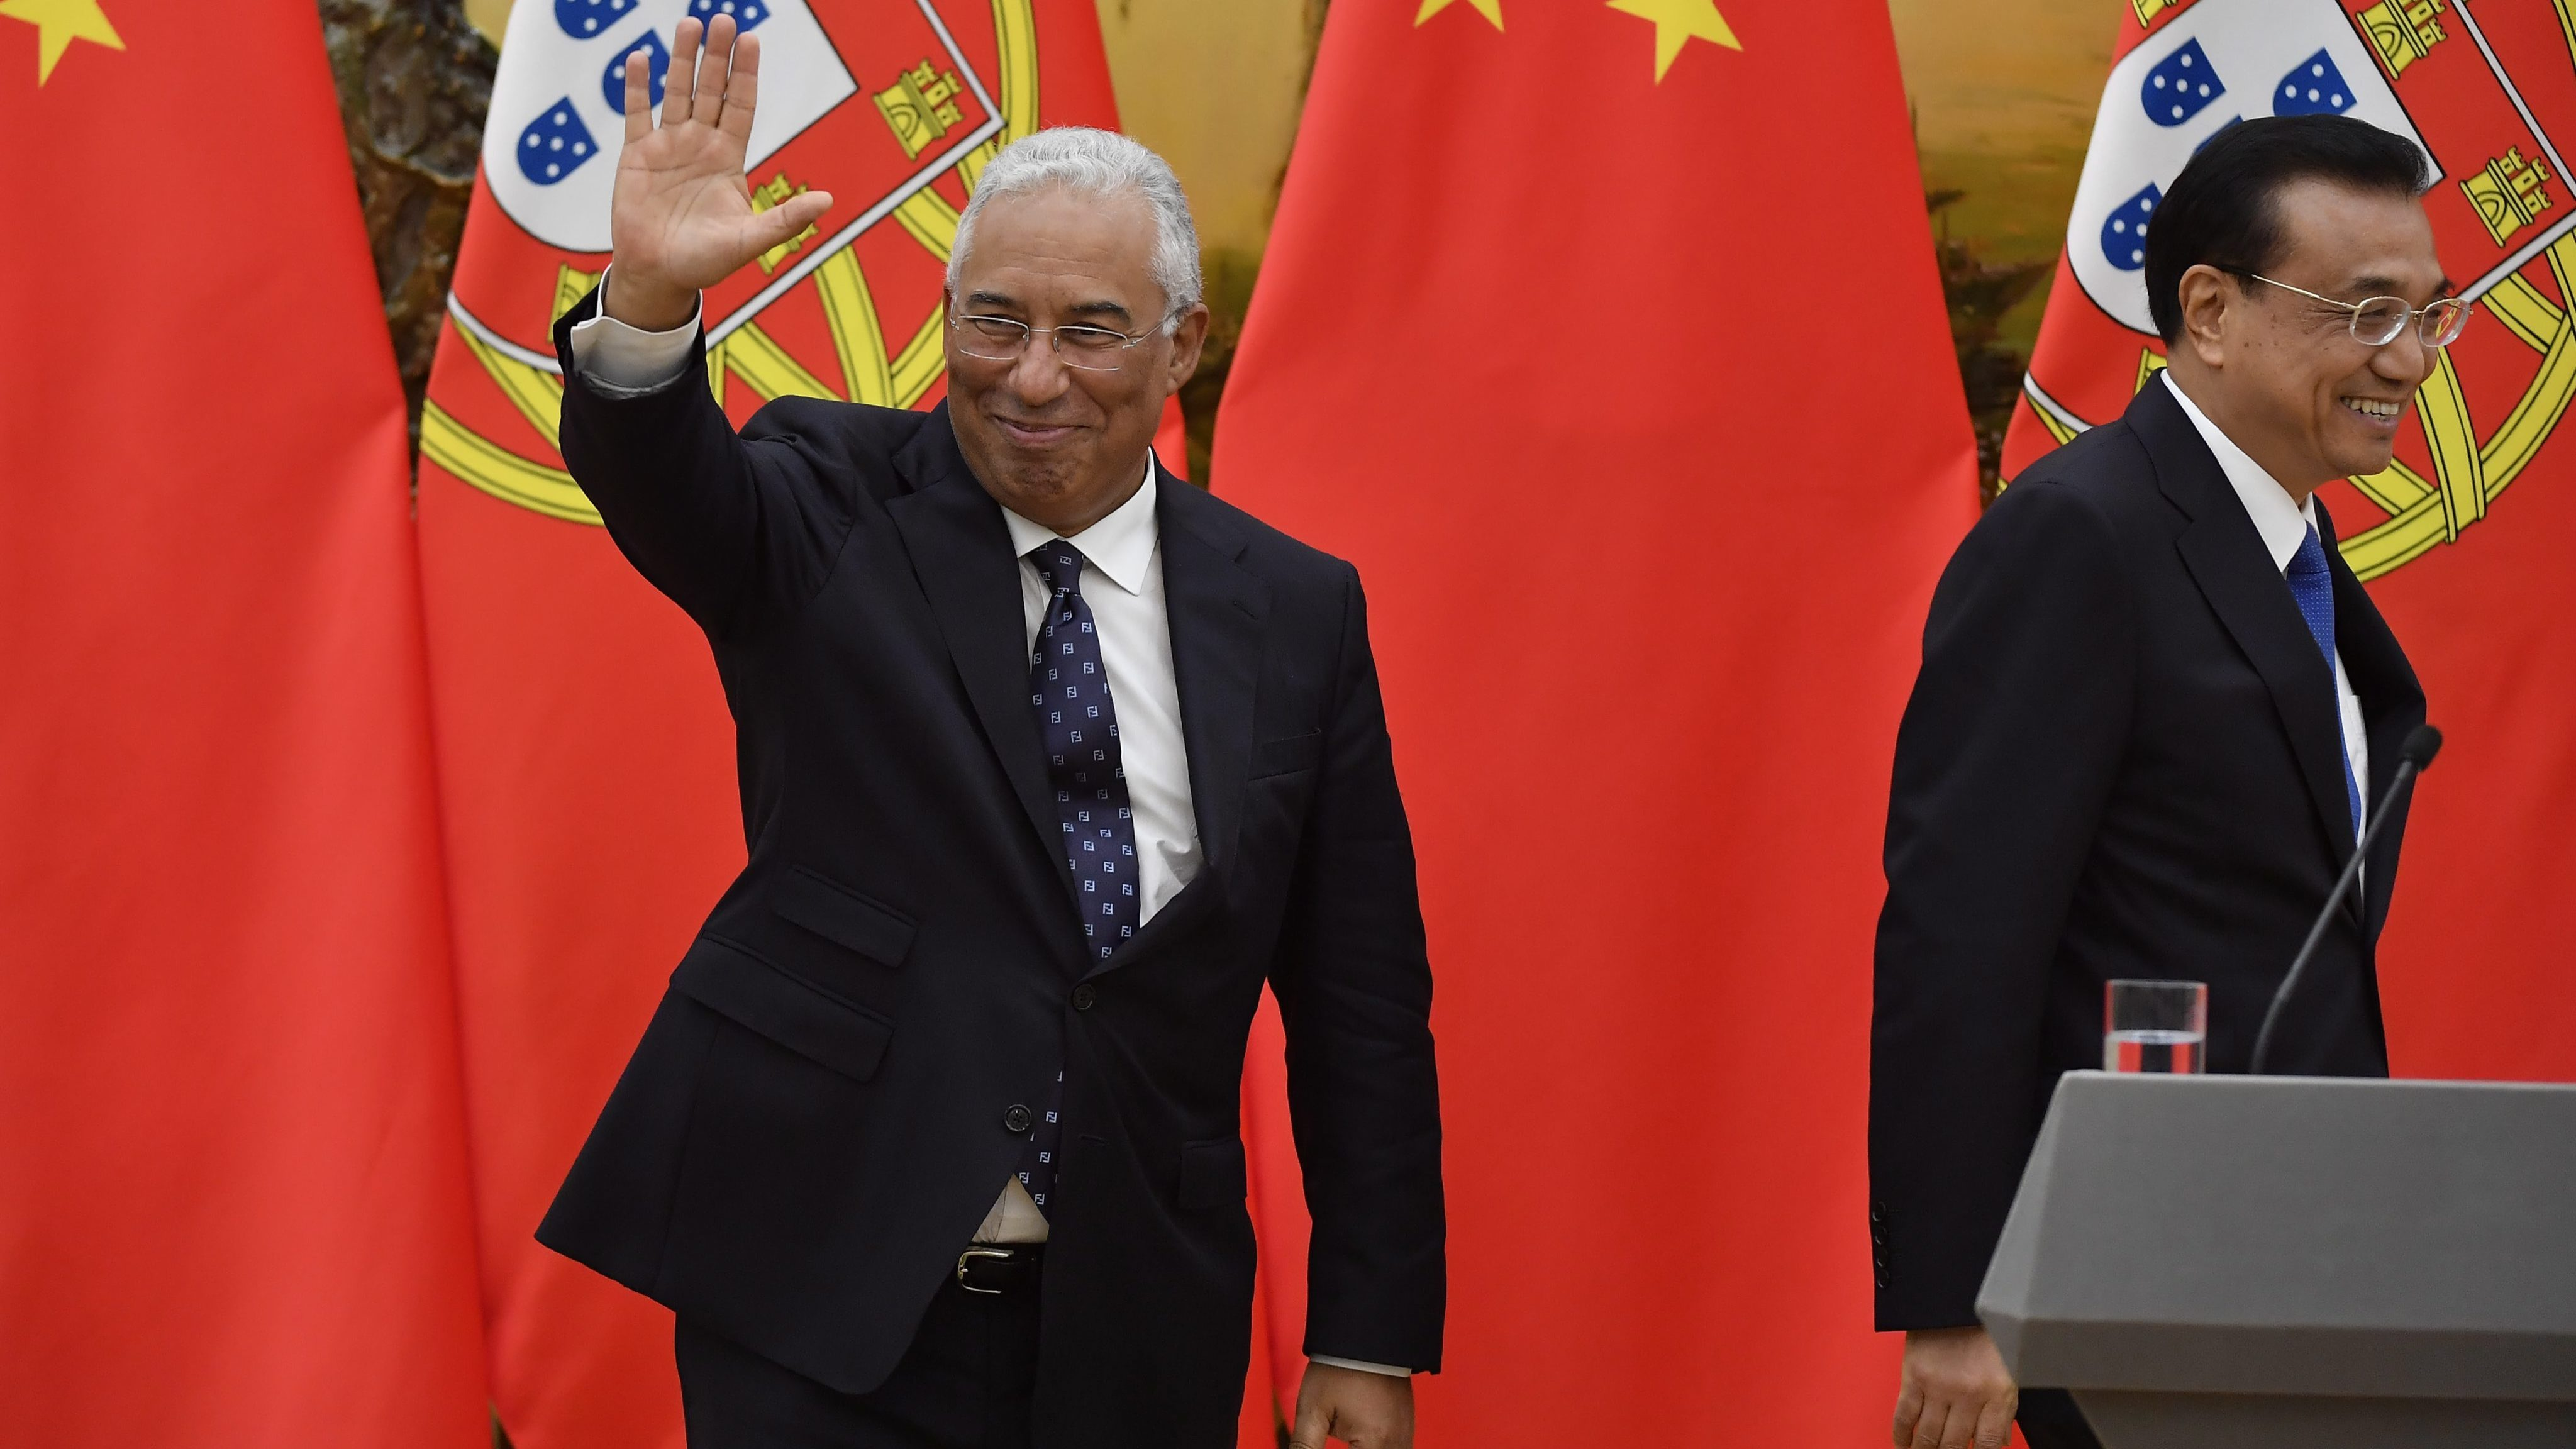 epa05577909 Portuguese Prime Minister Antonio Costa (L) waves as he attends a signing ceremony with Chinese Premier Li Keqiang (R) at the Great Hall of the People in Beijing, China, 09 October 2016. EPA/NAOHIKO HATTA / POOL